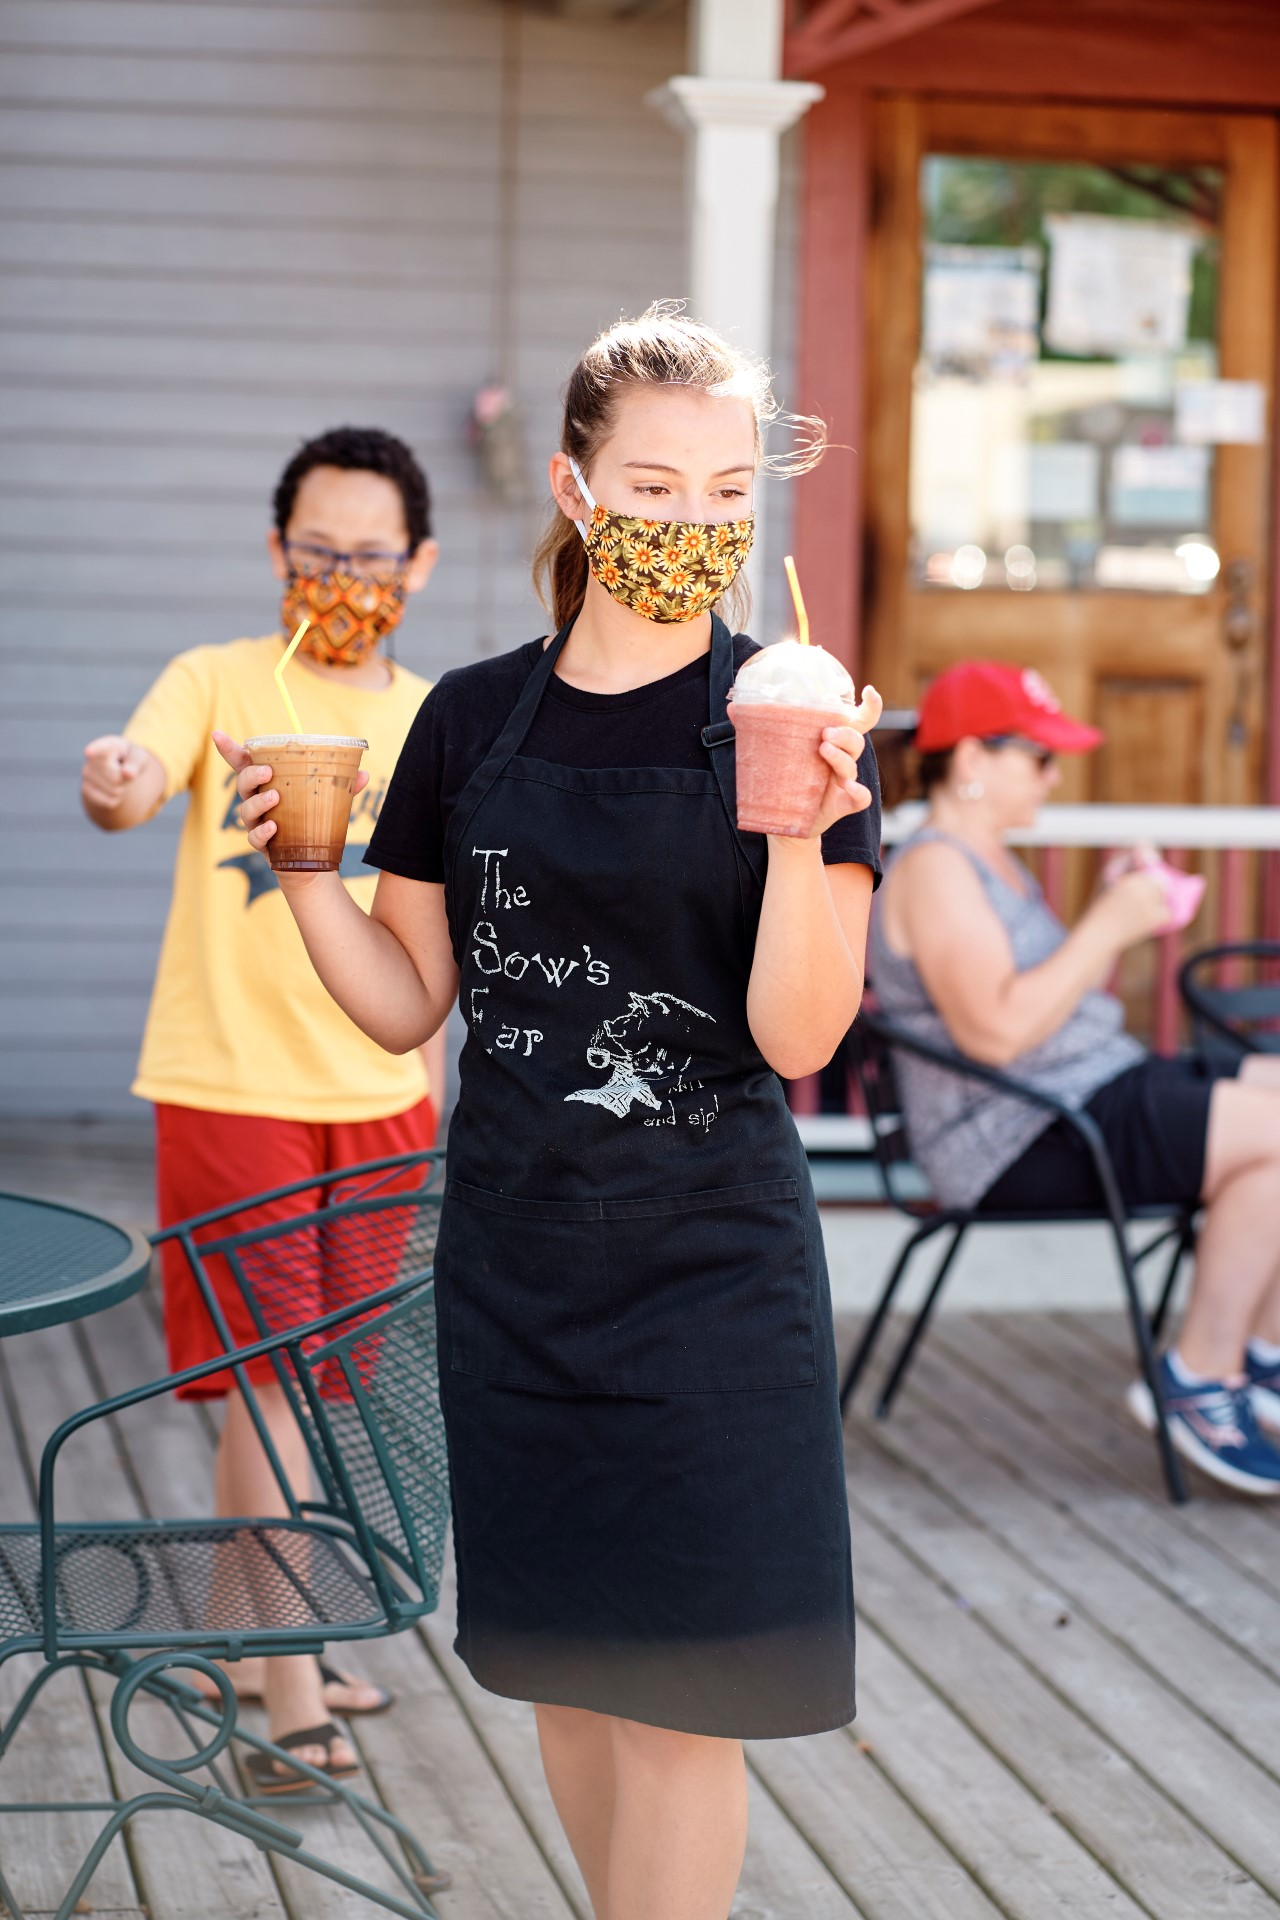 Serving Drinks in Mask